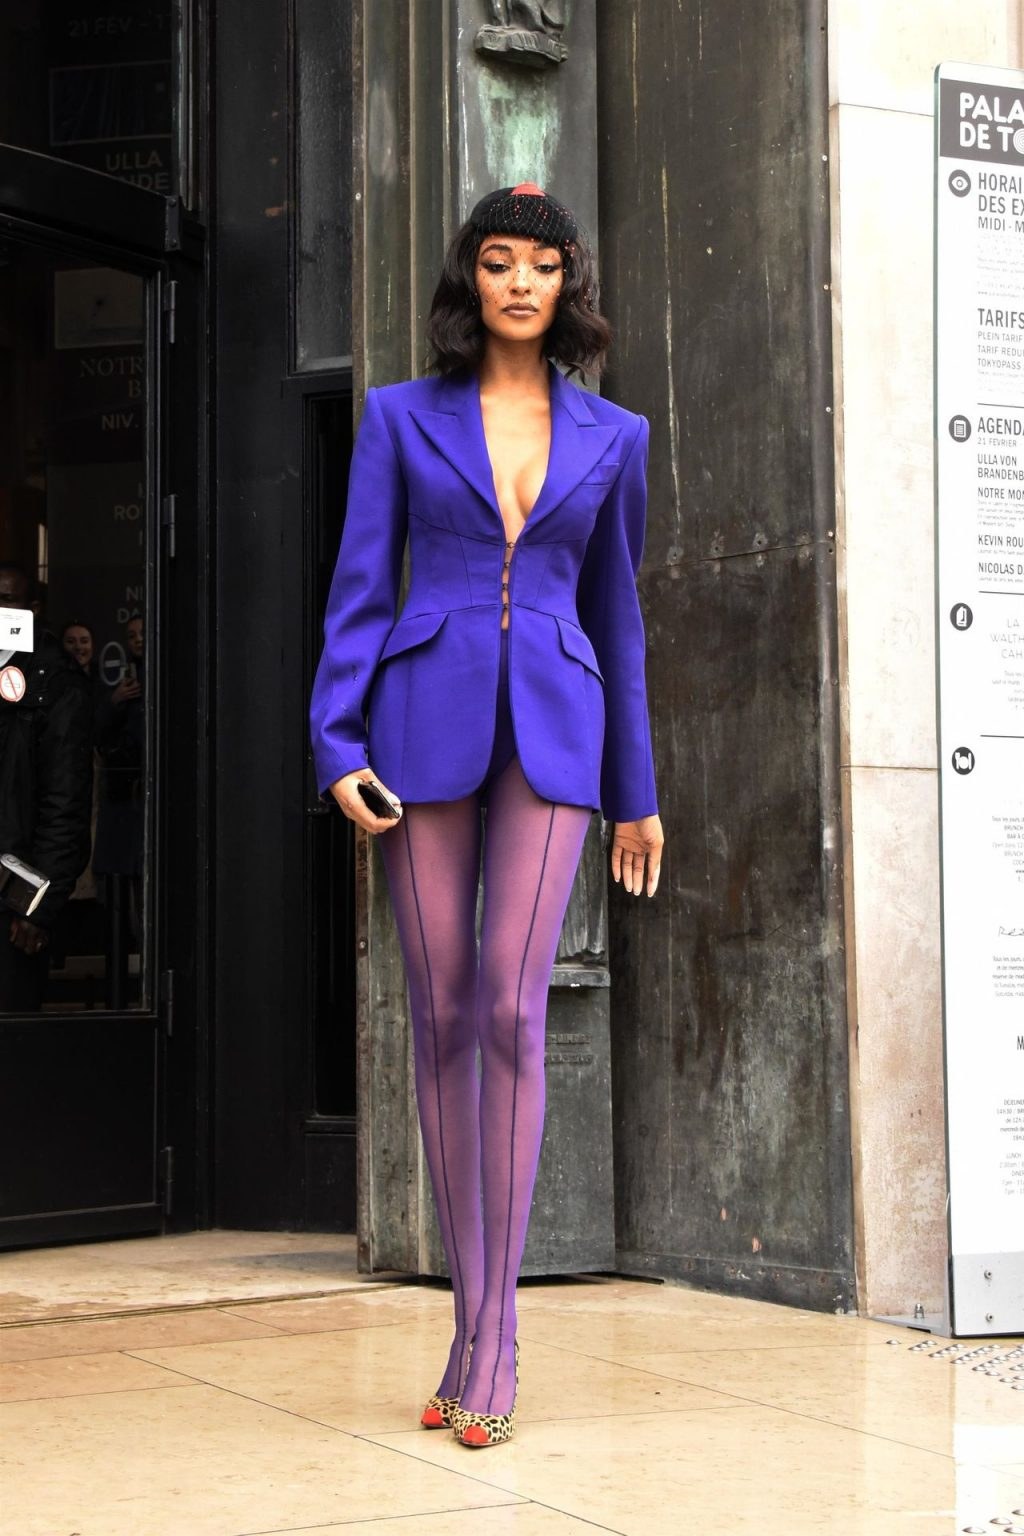 Jourdan Dunn Attends the Mugler Show in Paris (29 Photos)